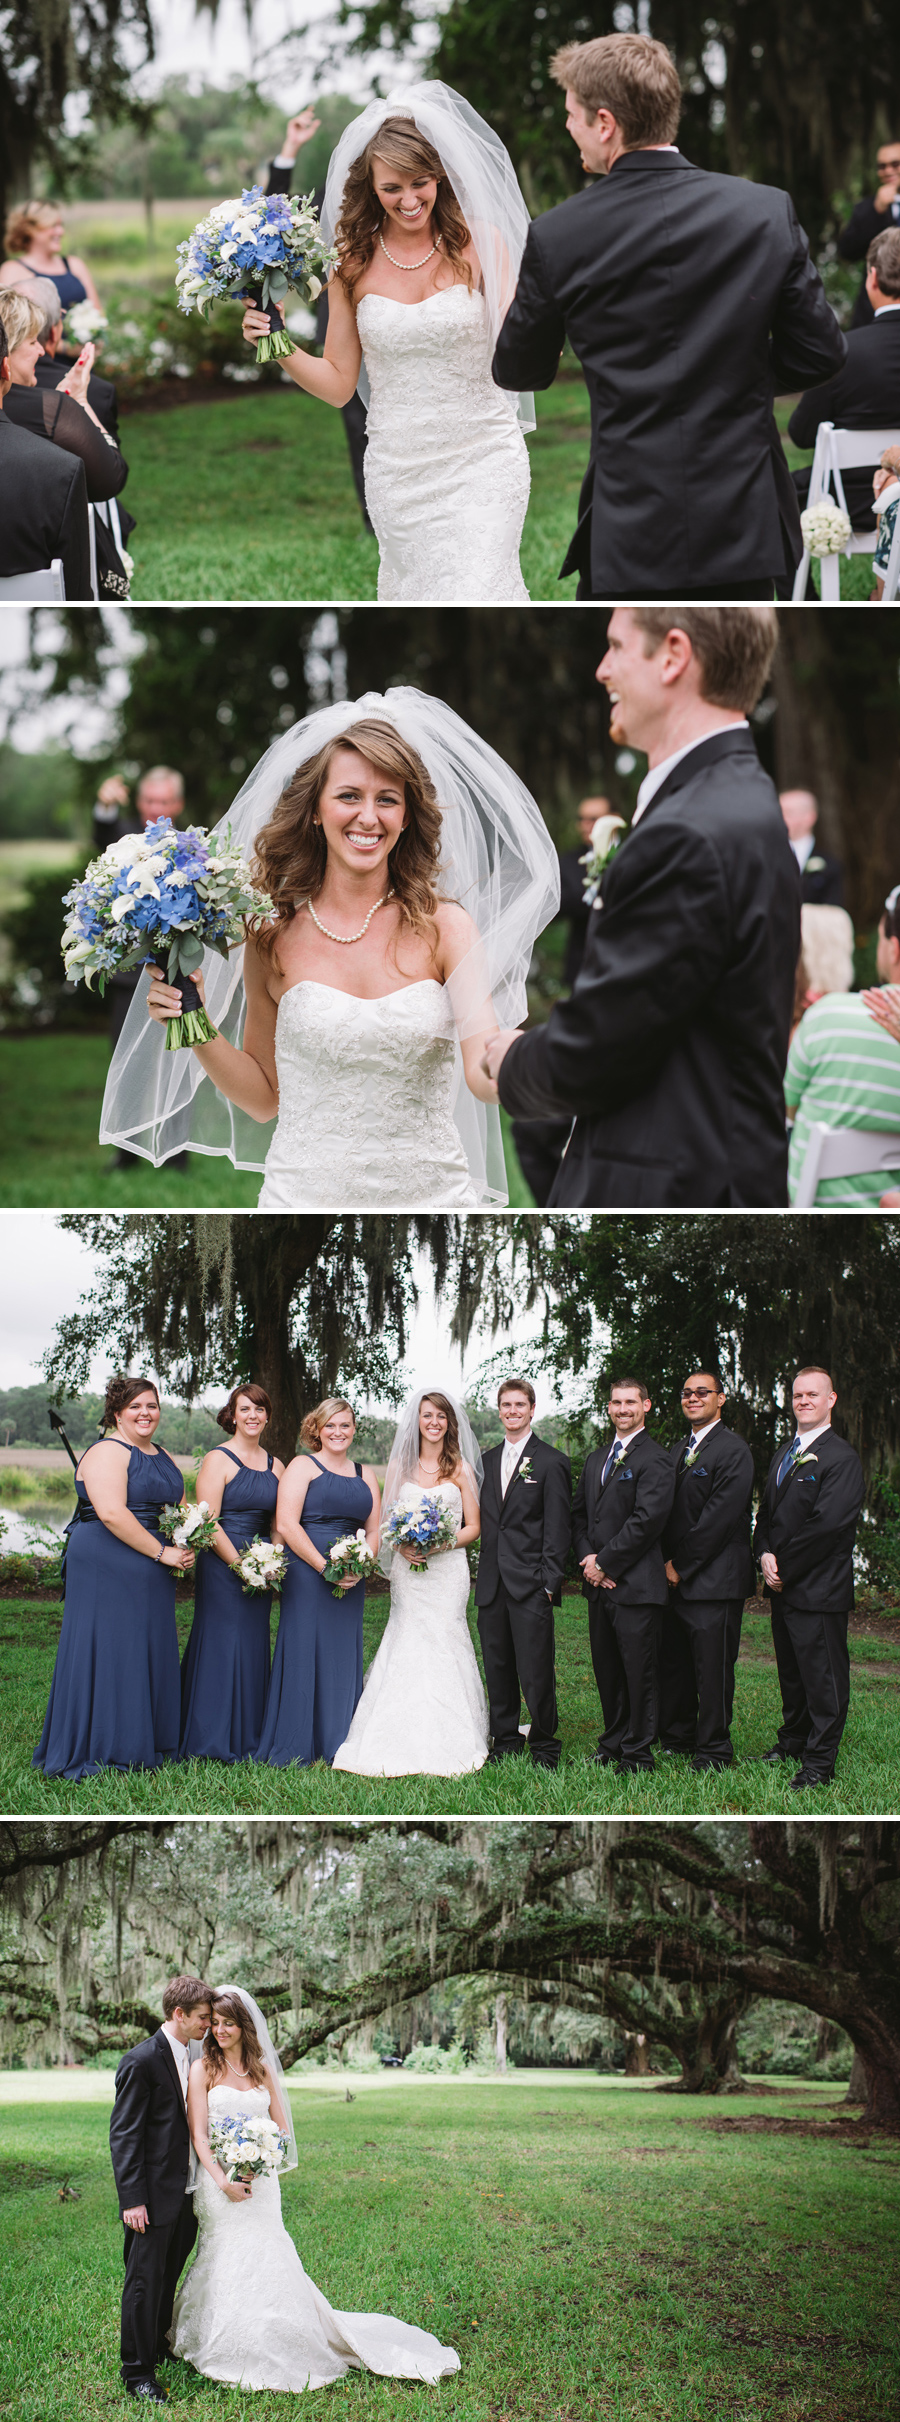 shannon-tim-magnolia-wedding